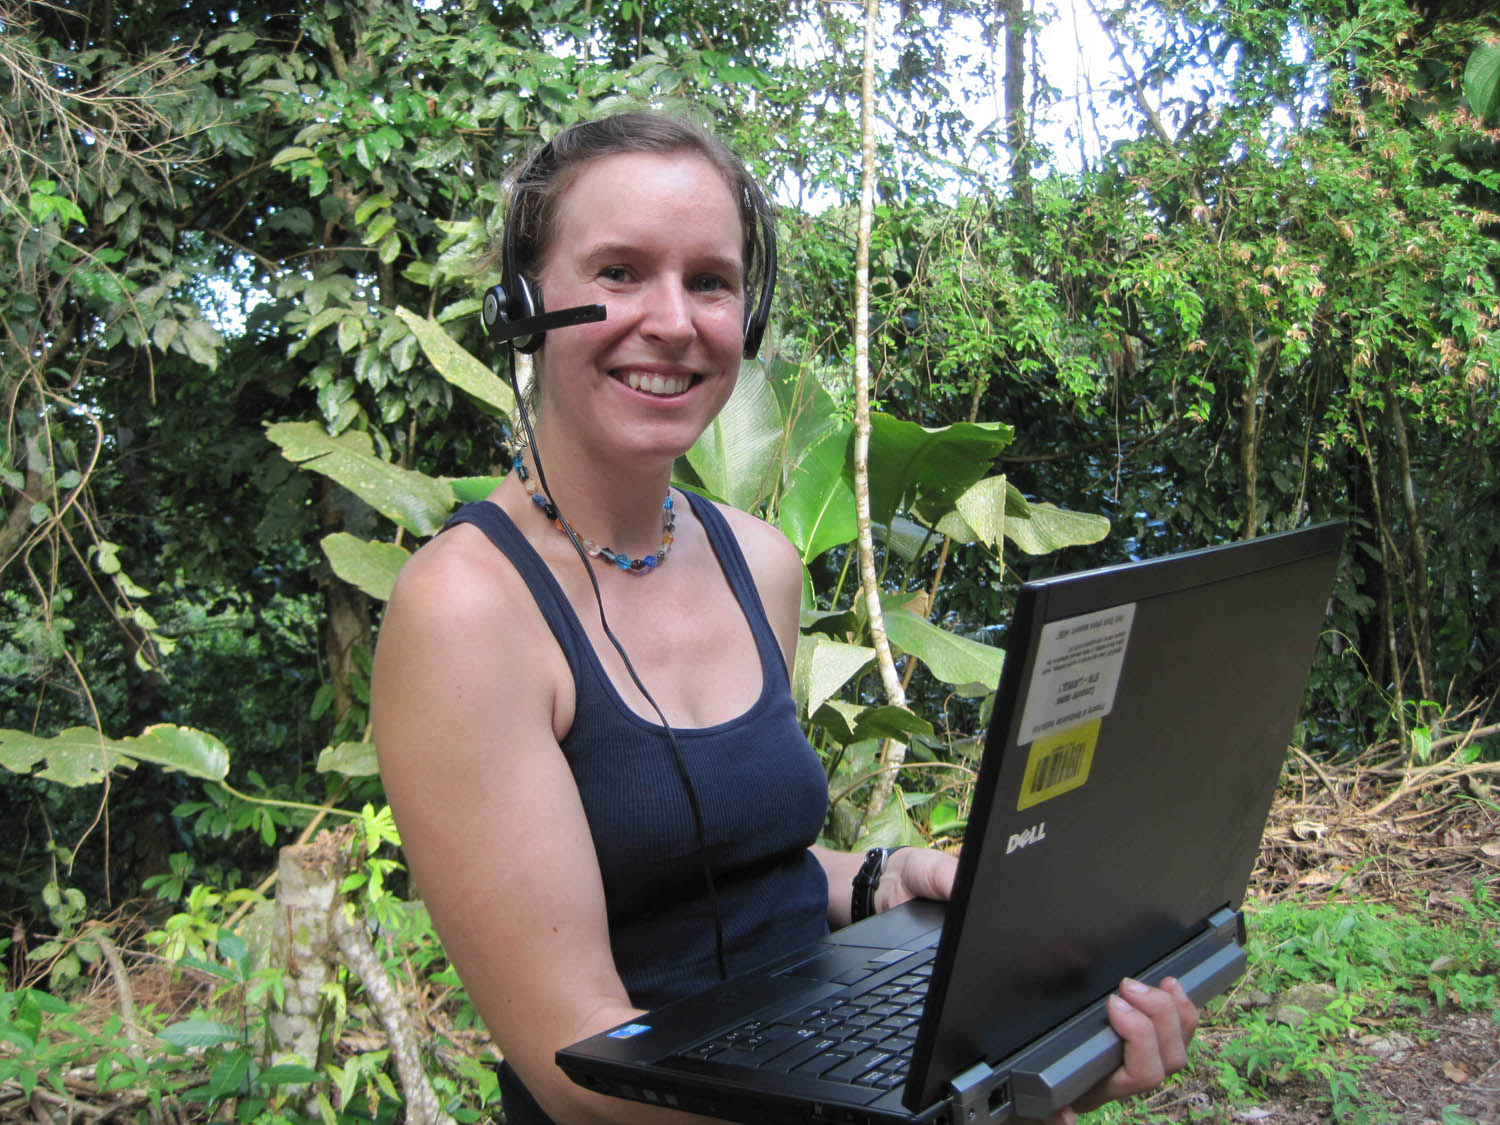 Students videoconference with scientists in Panama jungle